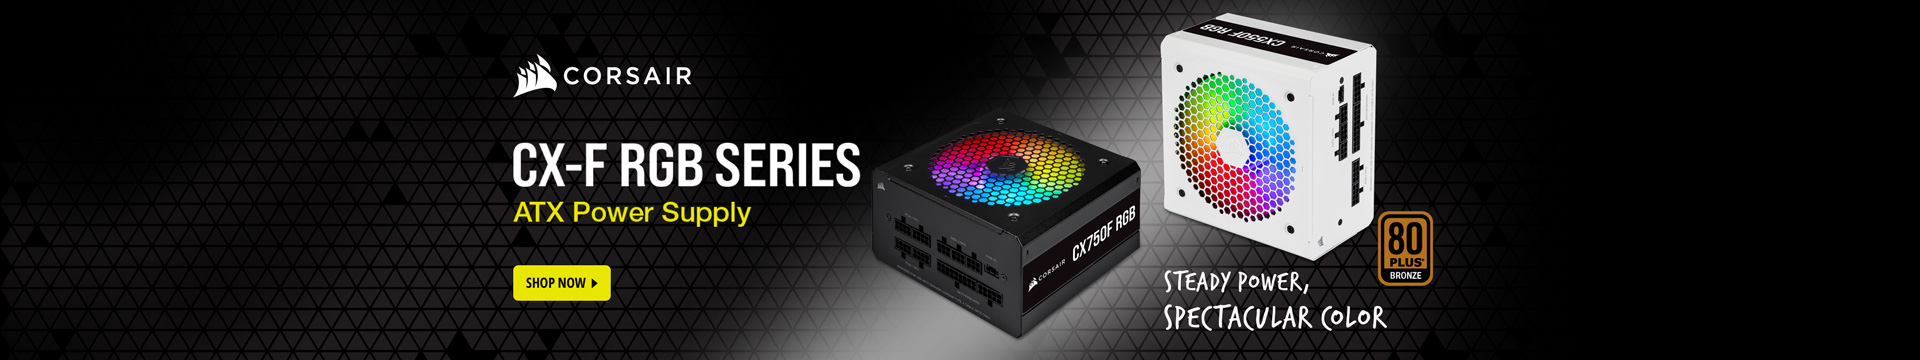 CX-F RGB Series